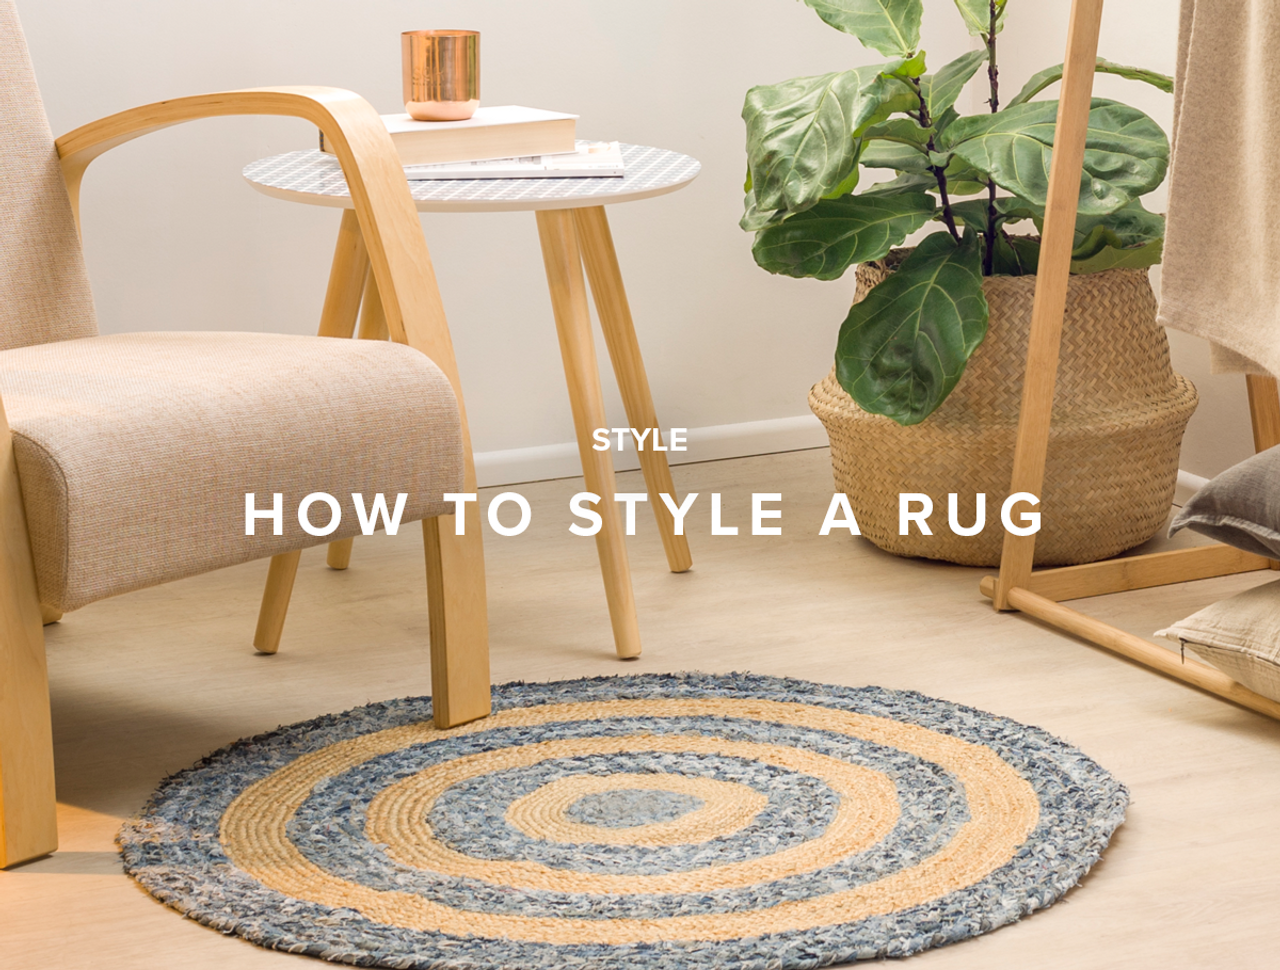 How to Style a Rug